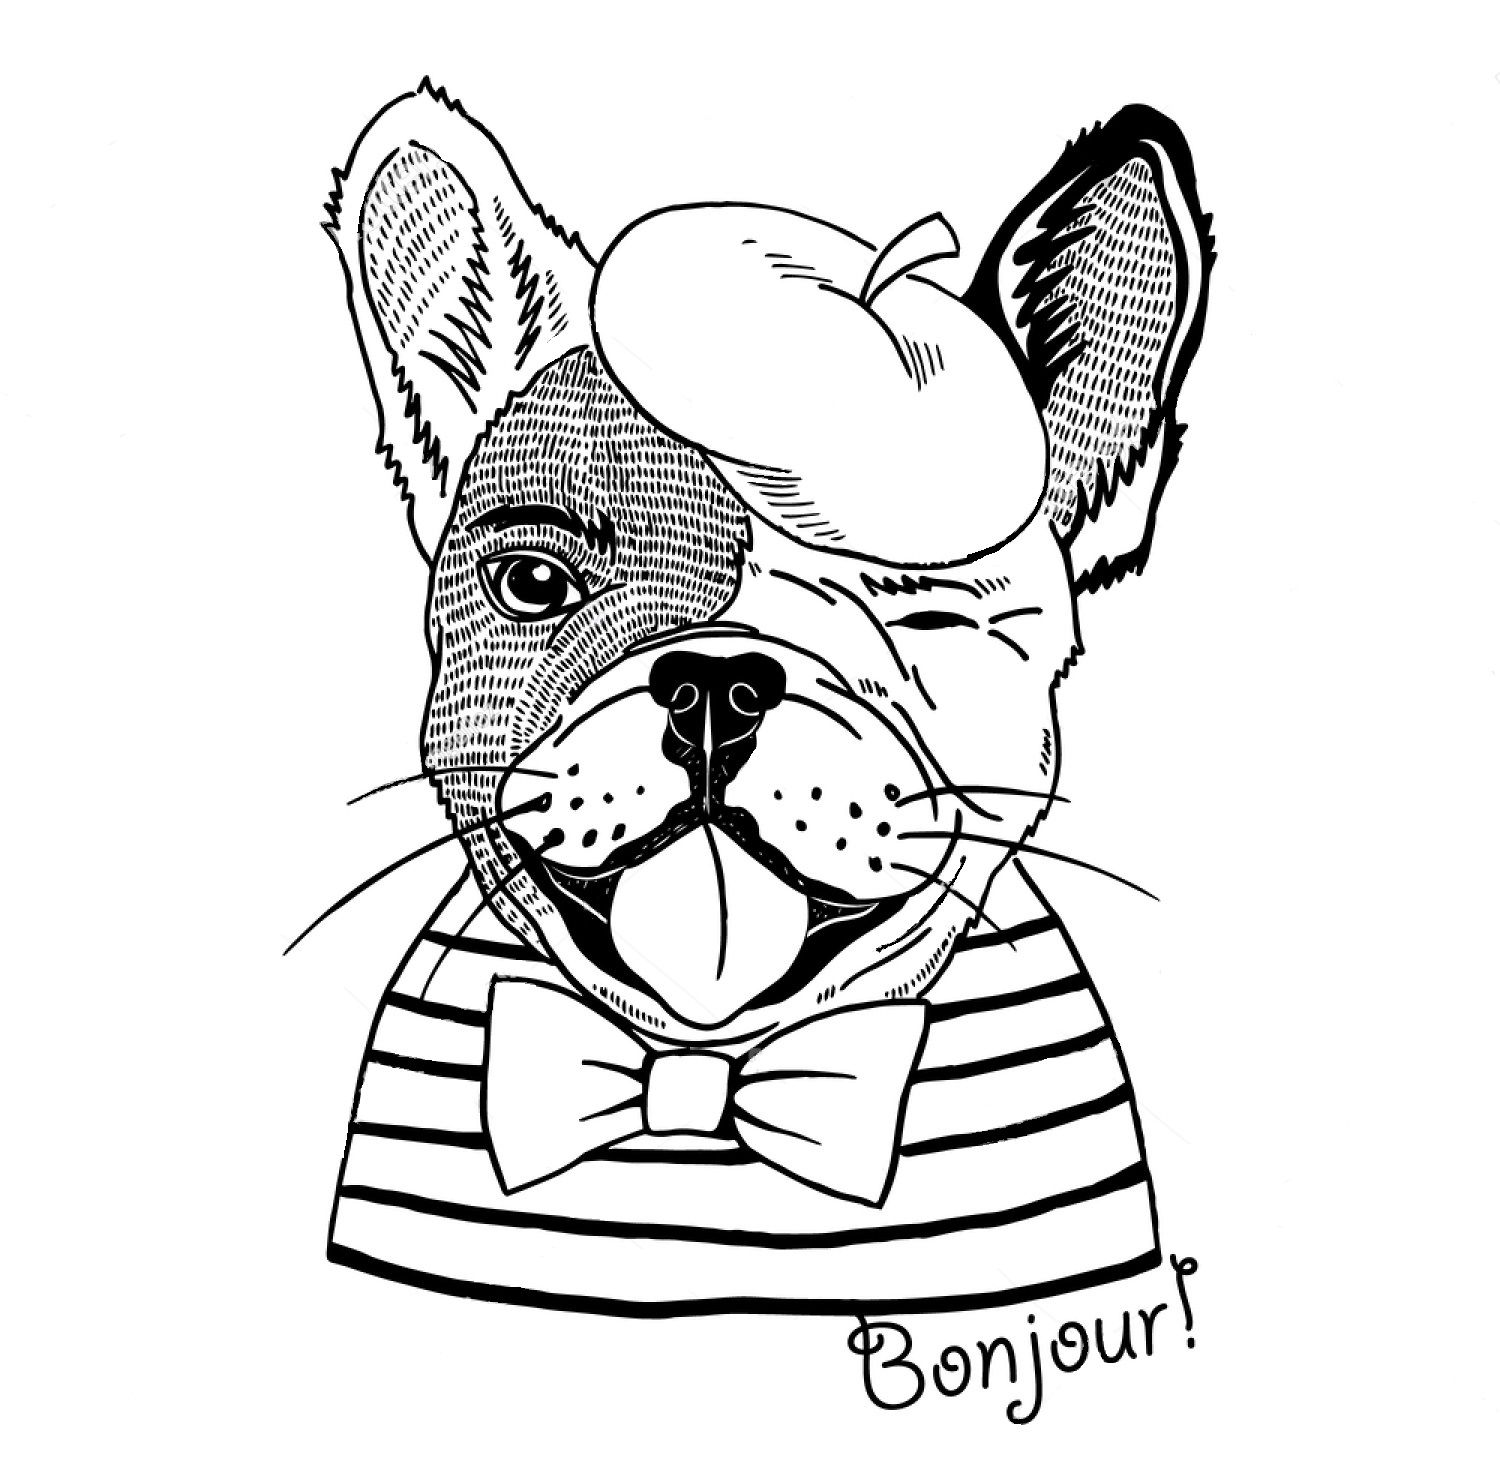 French Bulldog Coloring Page Puppy Coloring Pages Dog Coloring Page Coloring Books